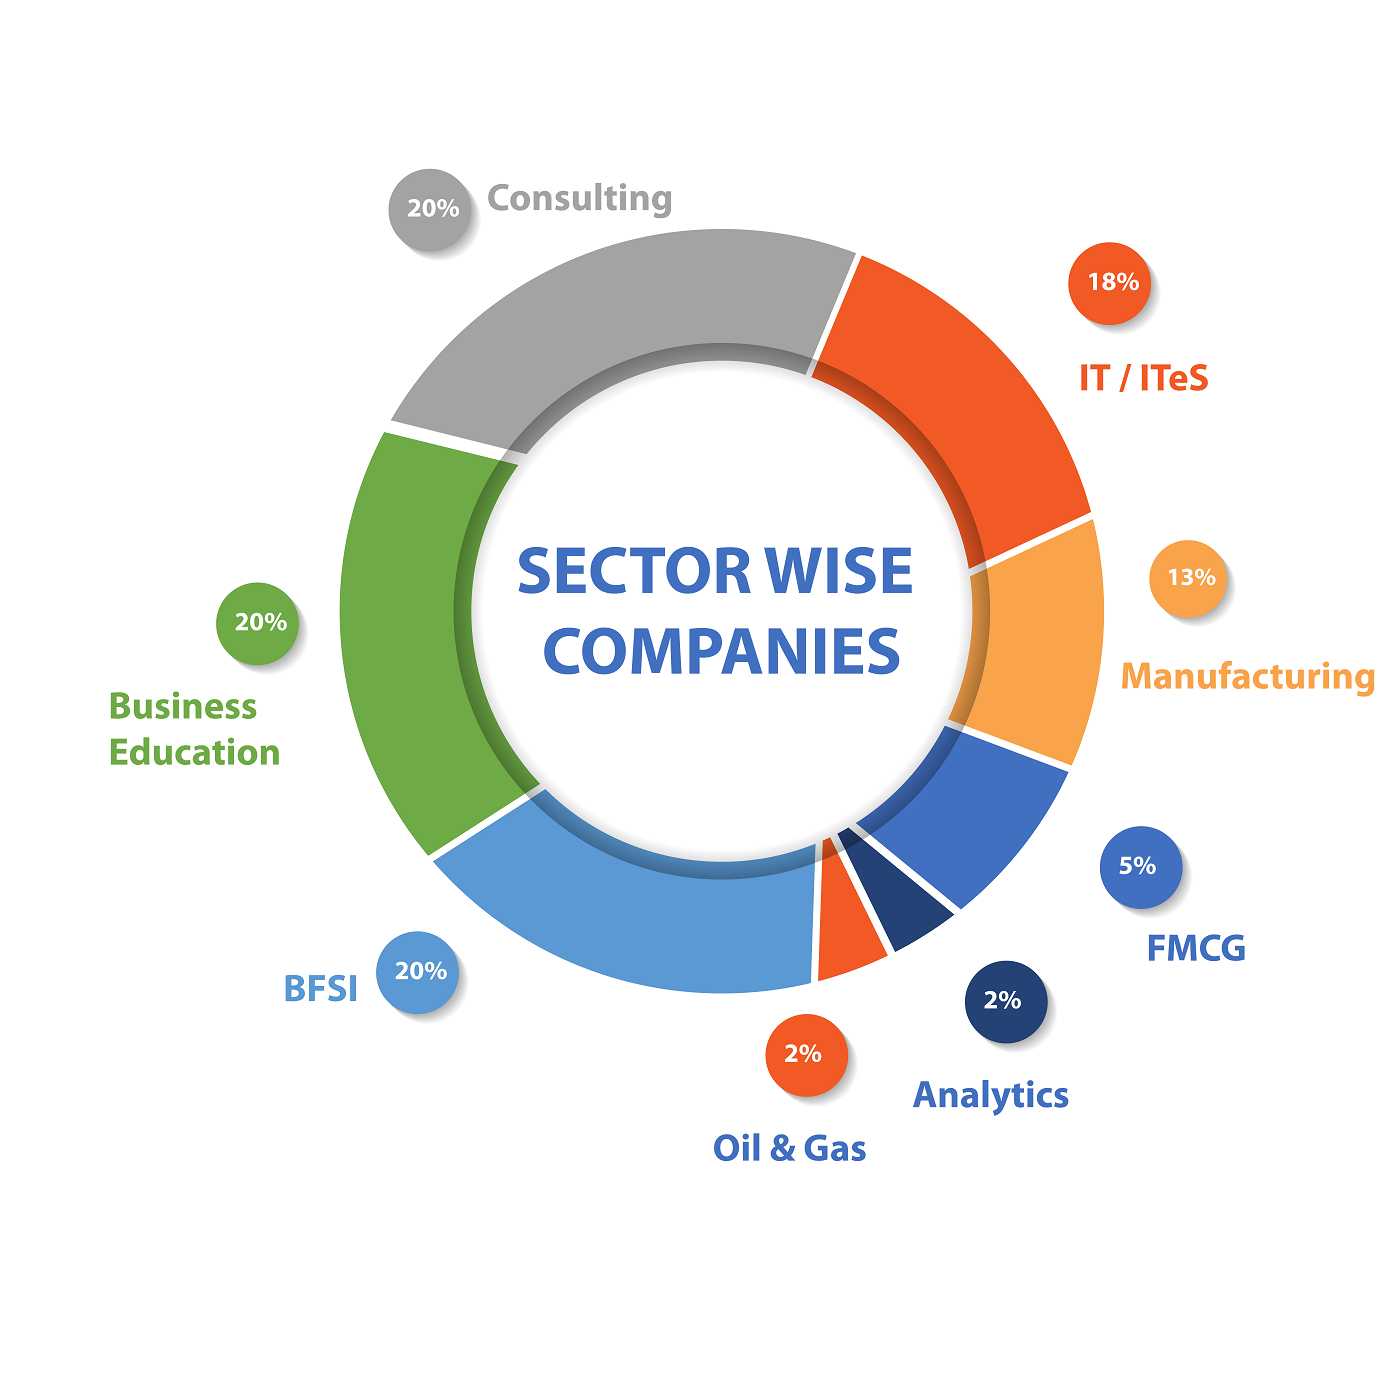 SECTOR-WISE COMPANIES